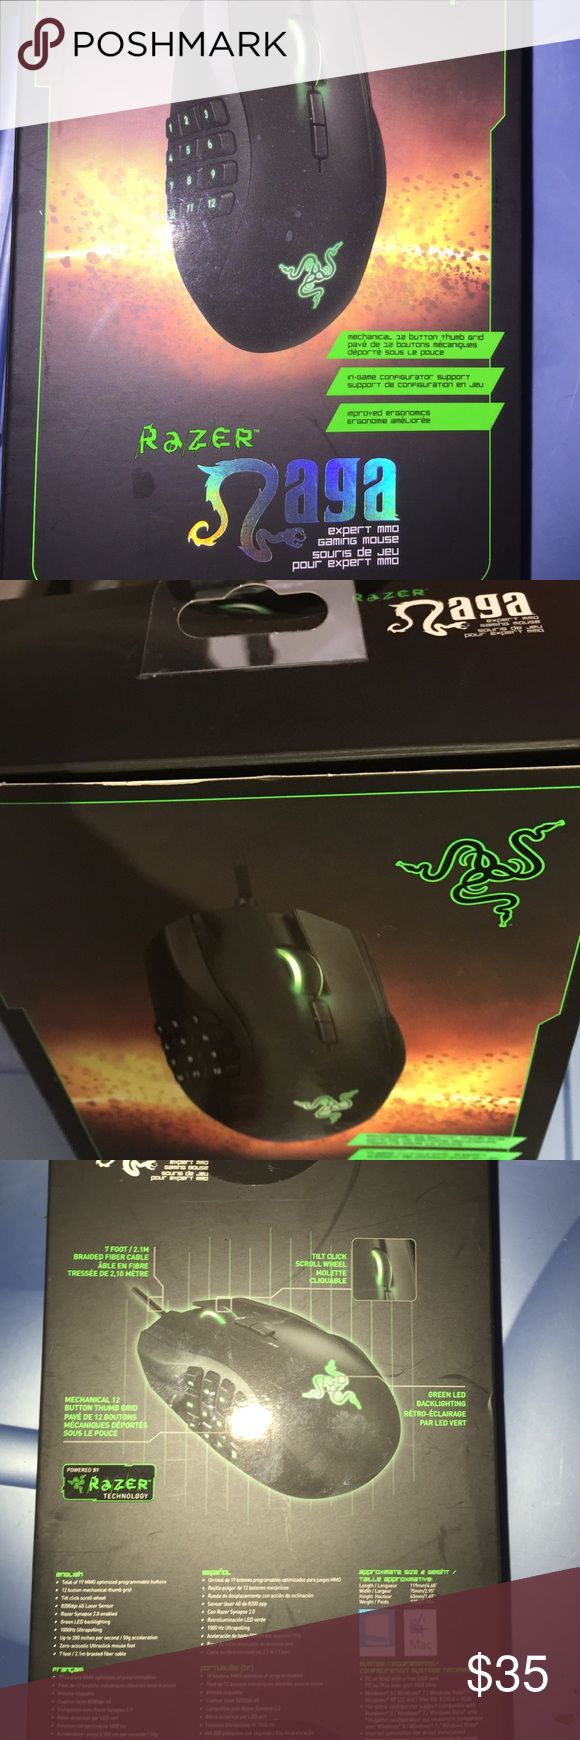 Razer Naga Mouse new in package - New in box with receipt. Paid 68.89- 35.00 firm - will ignore offers. Accessories